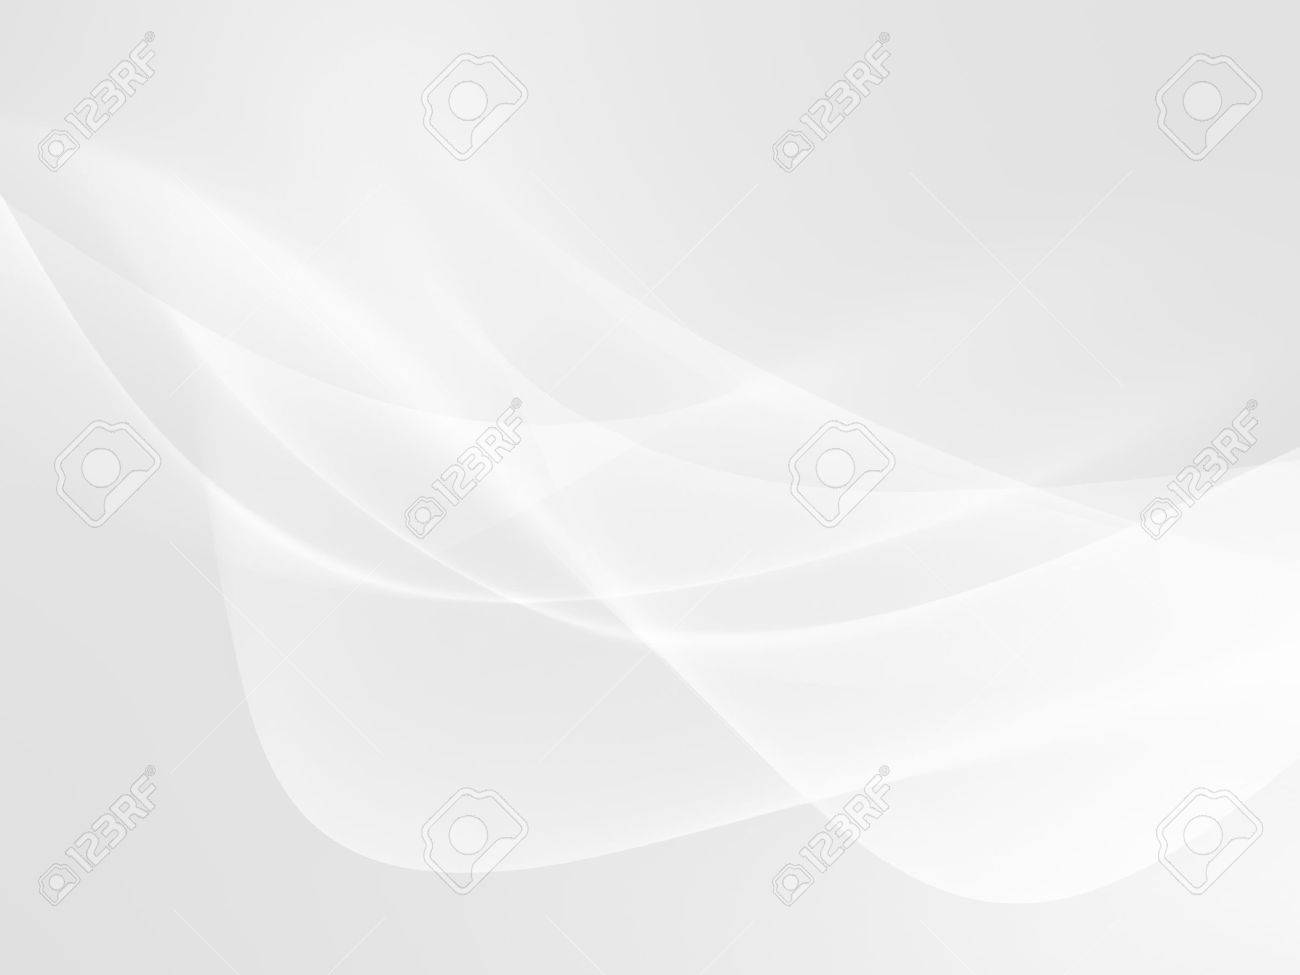 abstract white background with smooth wavy lines - 52584236